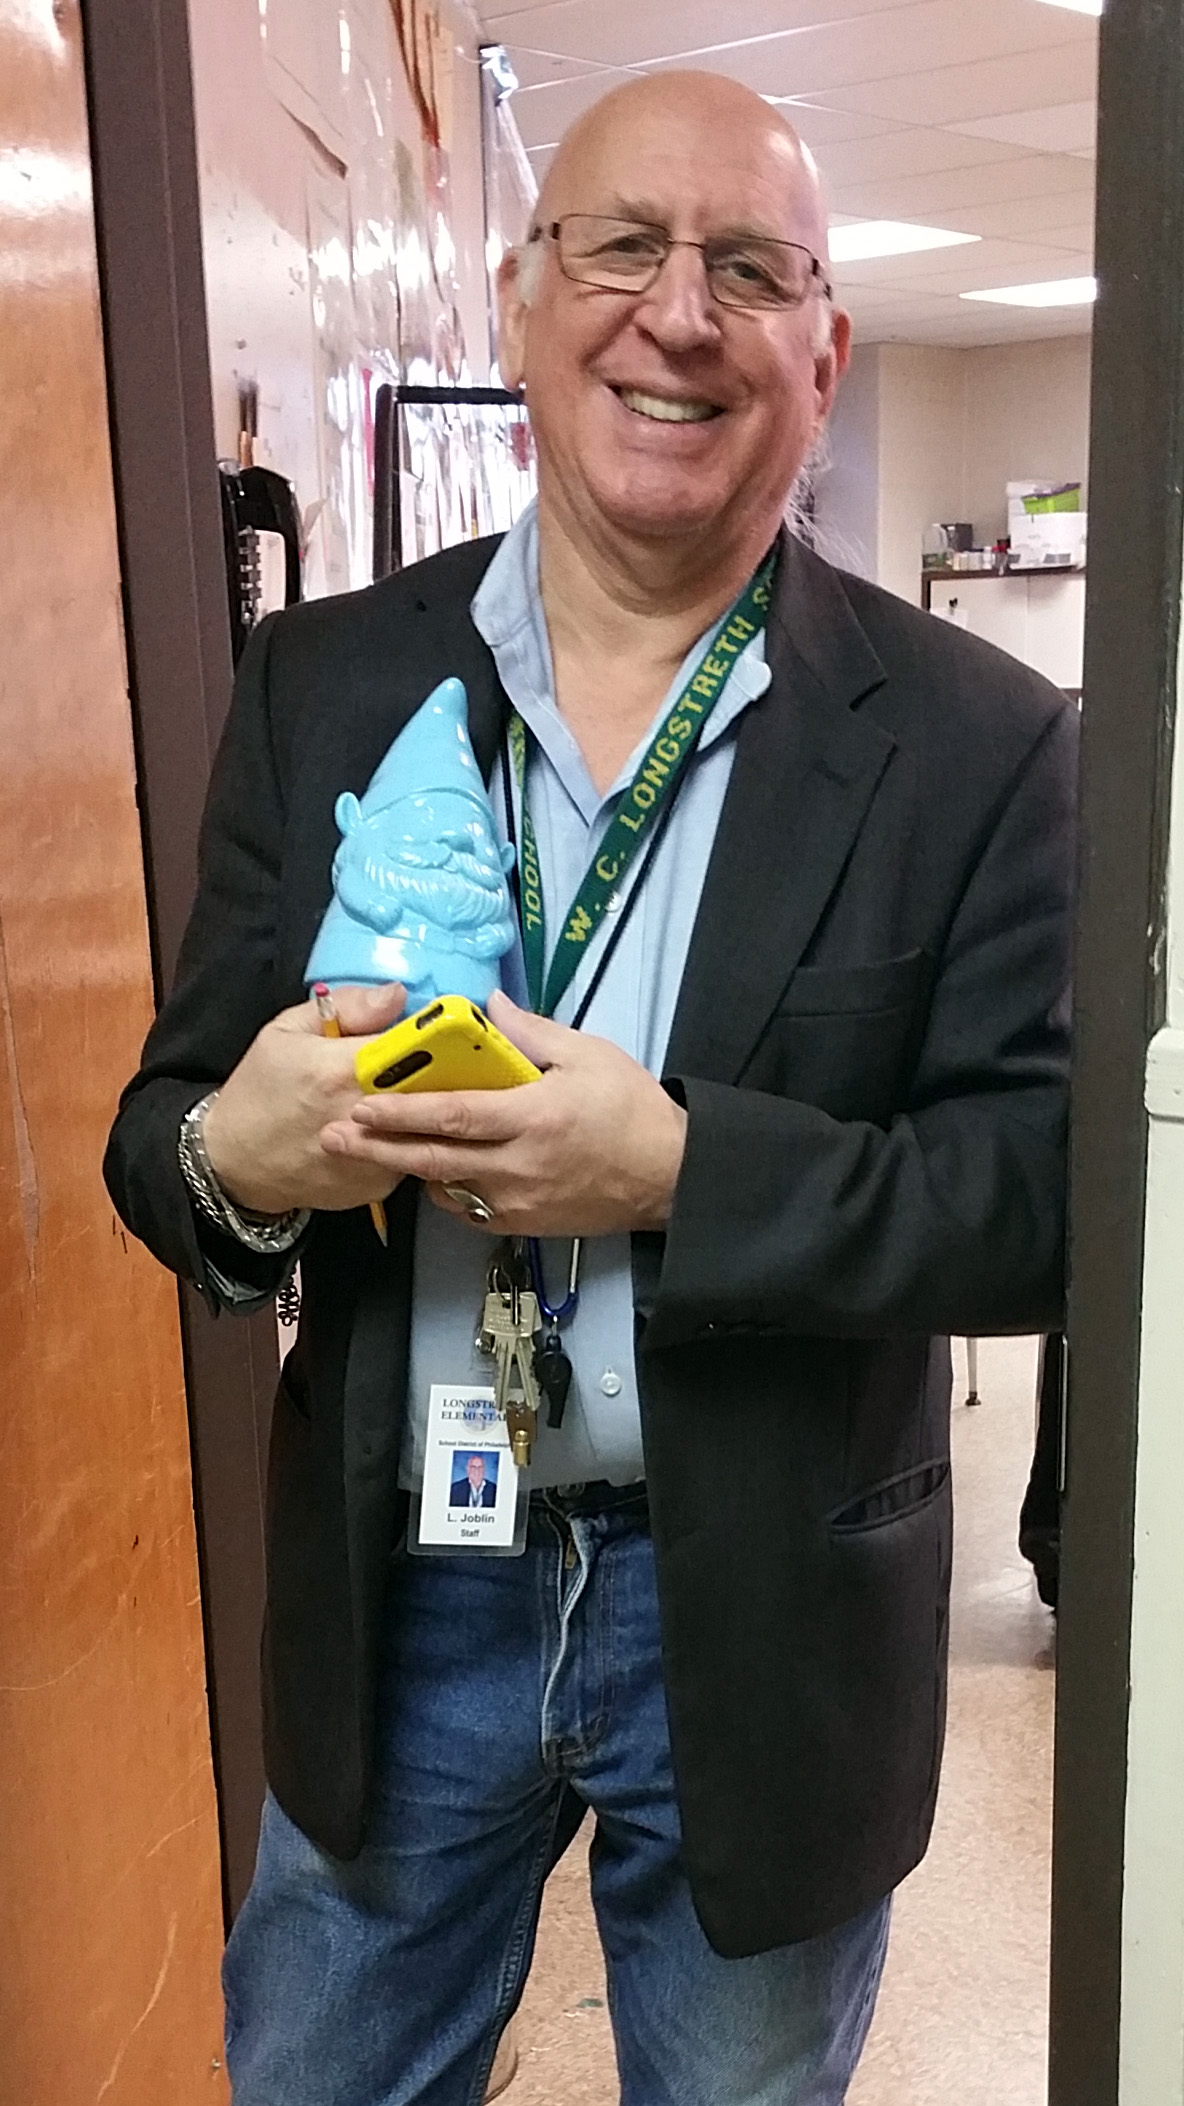 Mr. Joblin shows off the garden gnome he earned